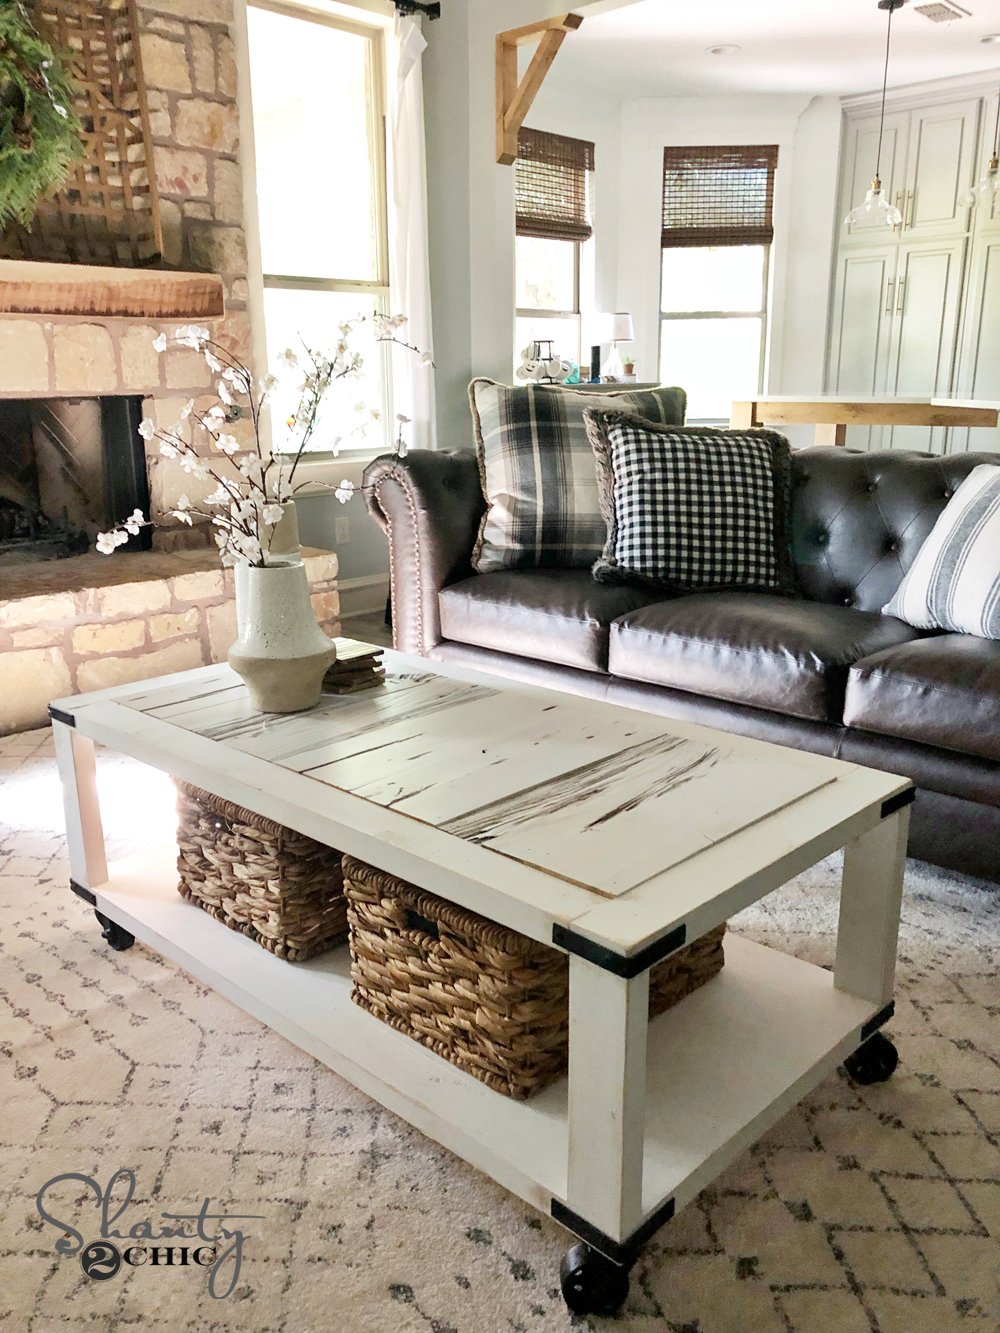 Diy Barn Wood Cart Coffee Table For 50 Free Plans Video Tutorial